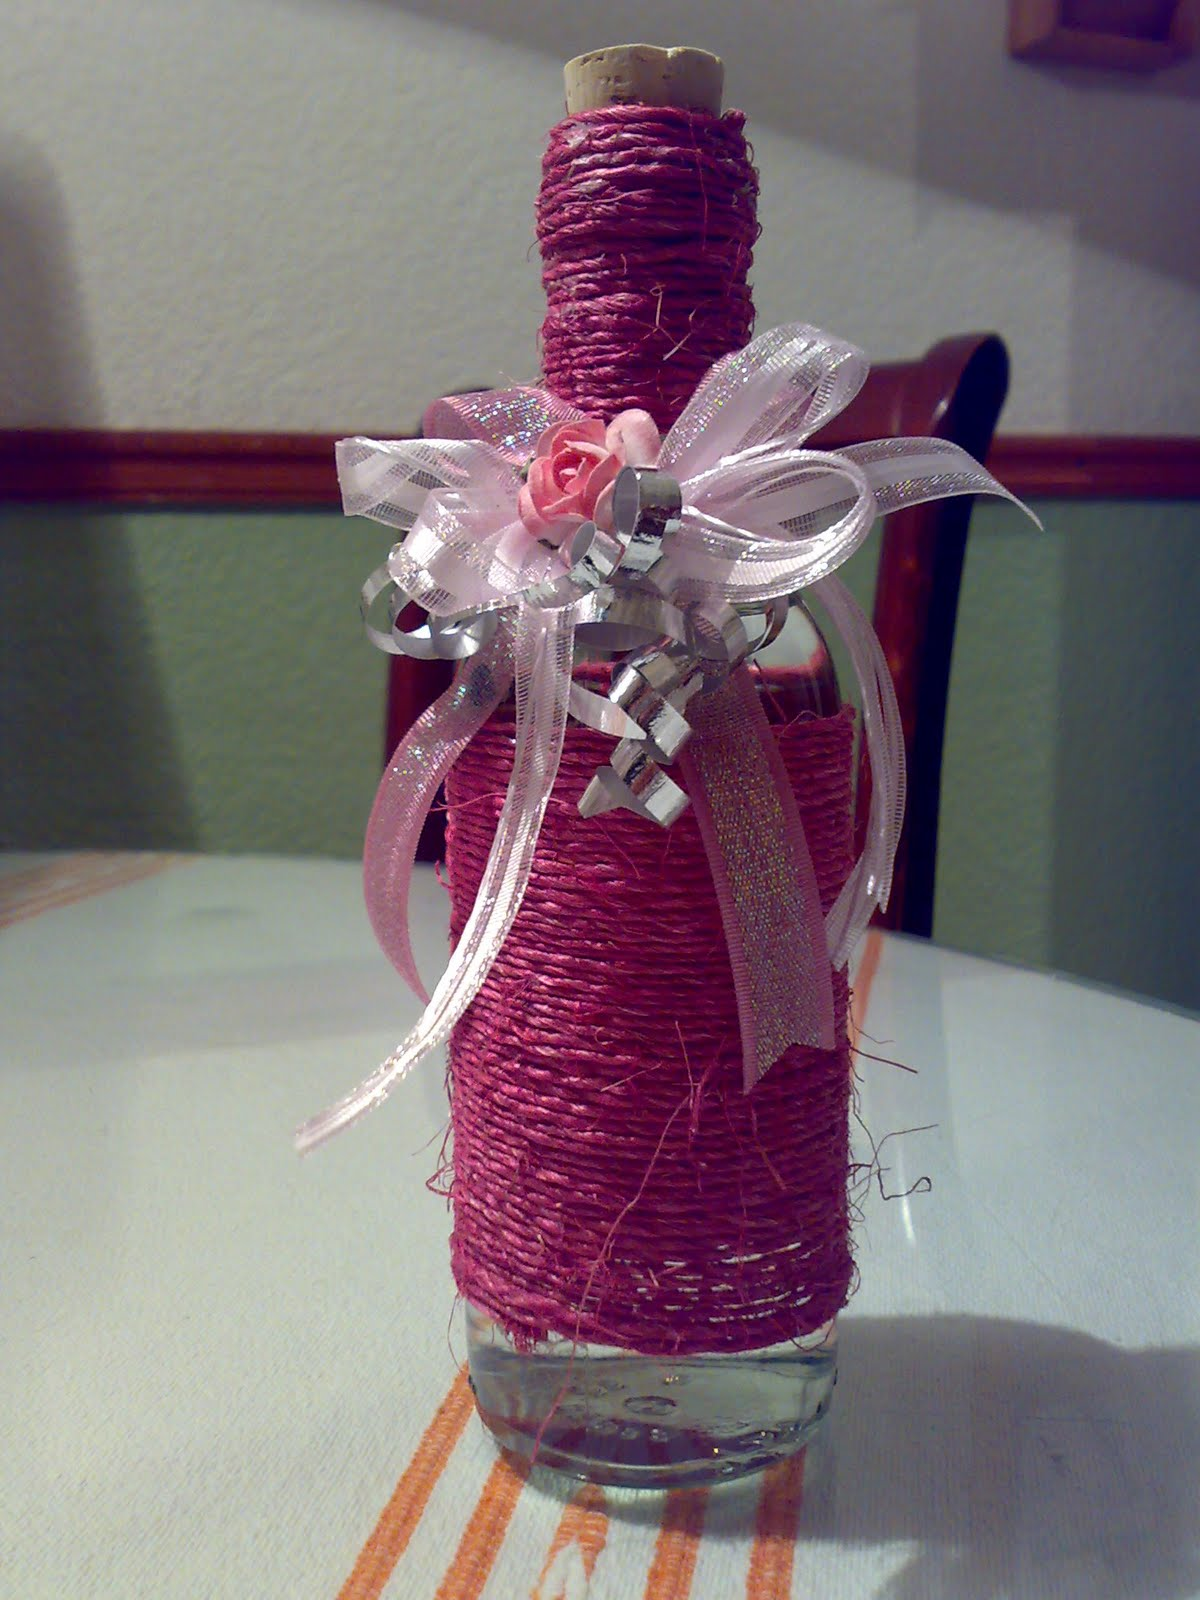 Botellas Decoradas Para 15 Botellas De Brindis Decoradas Para Quince Anos Copas Y